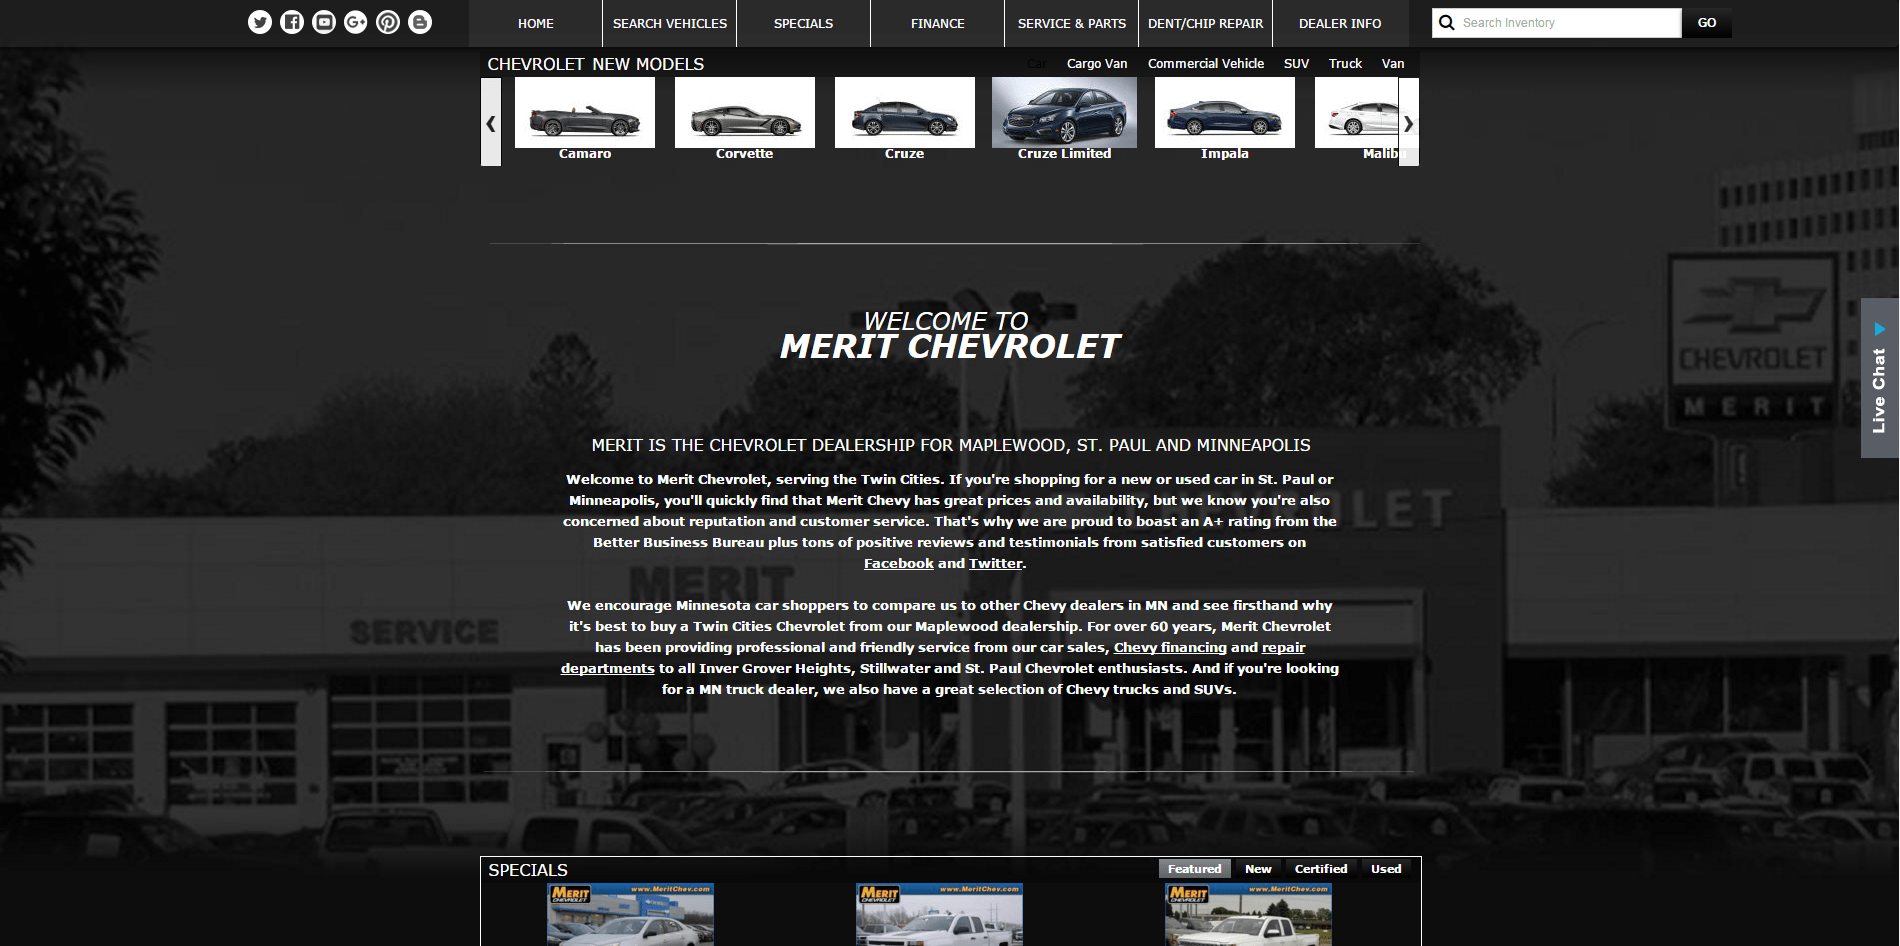 Merit Chevrolet (After) 1.2